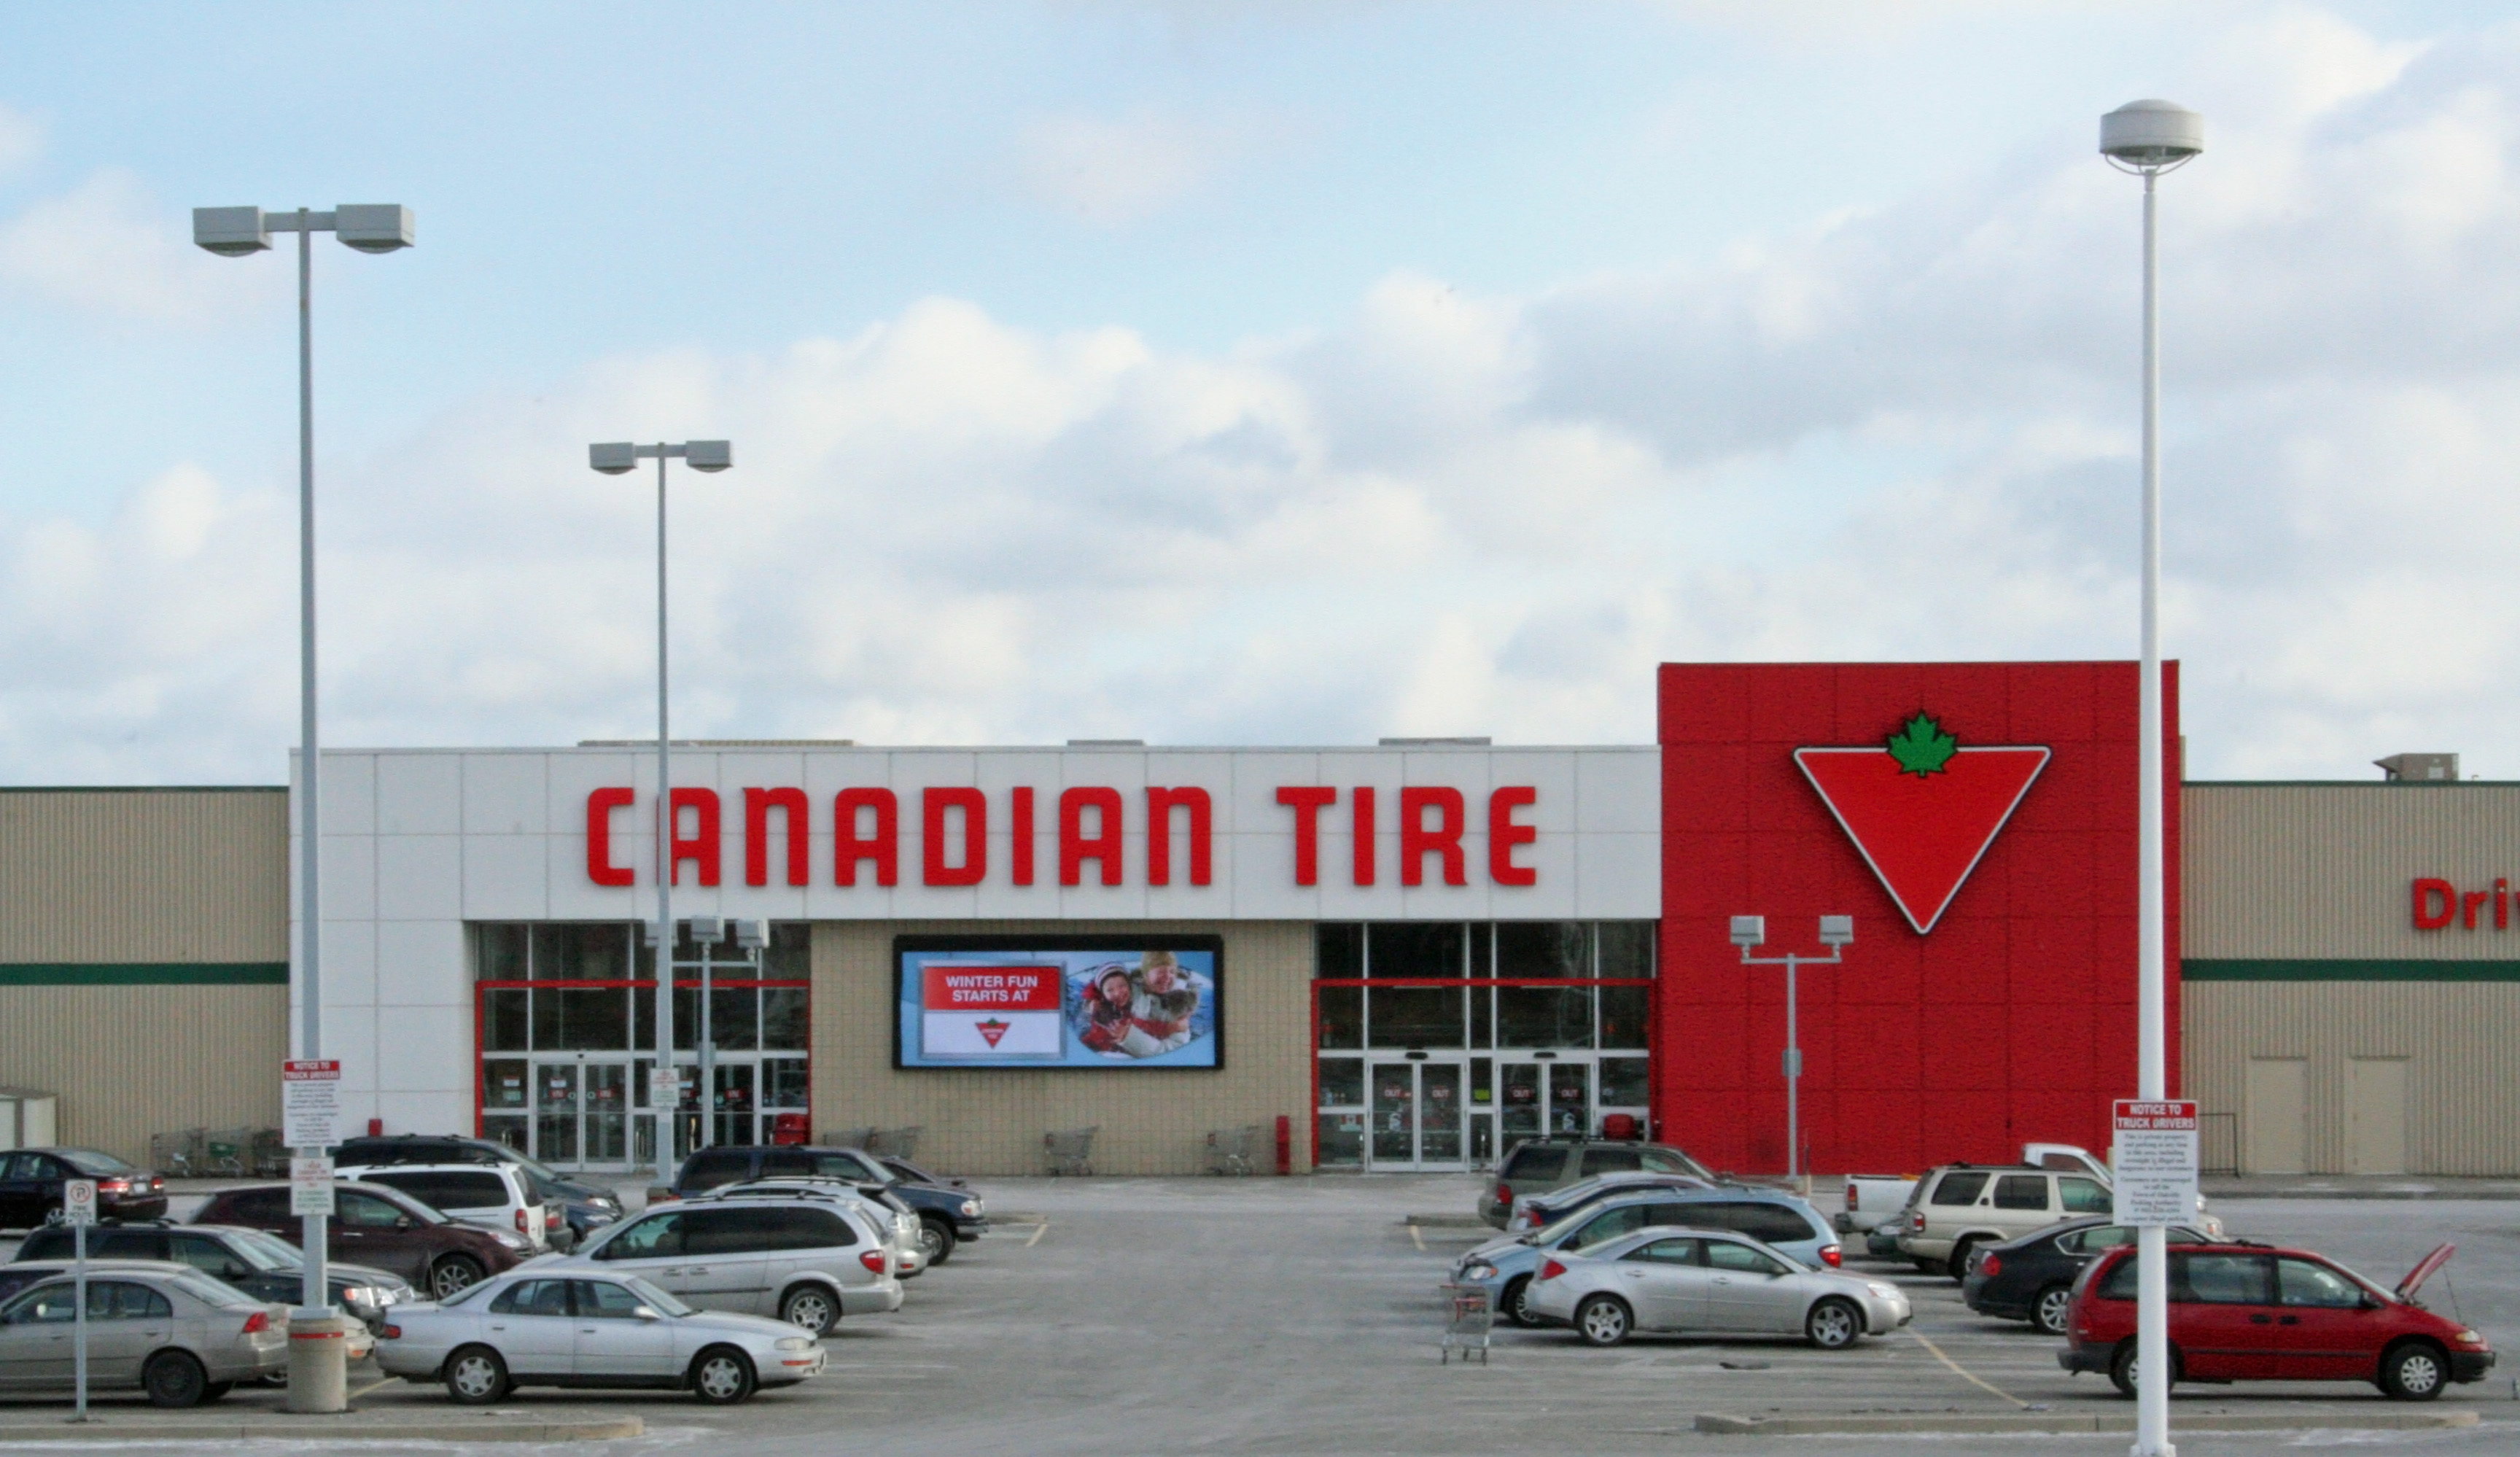 File:CanadianTire.jpg - Wikipedia, the free encyclopedia